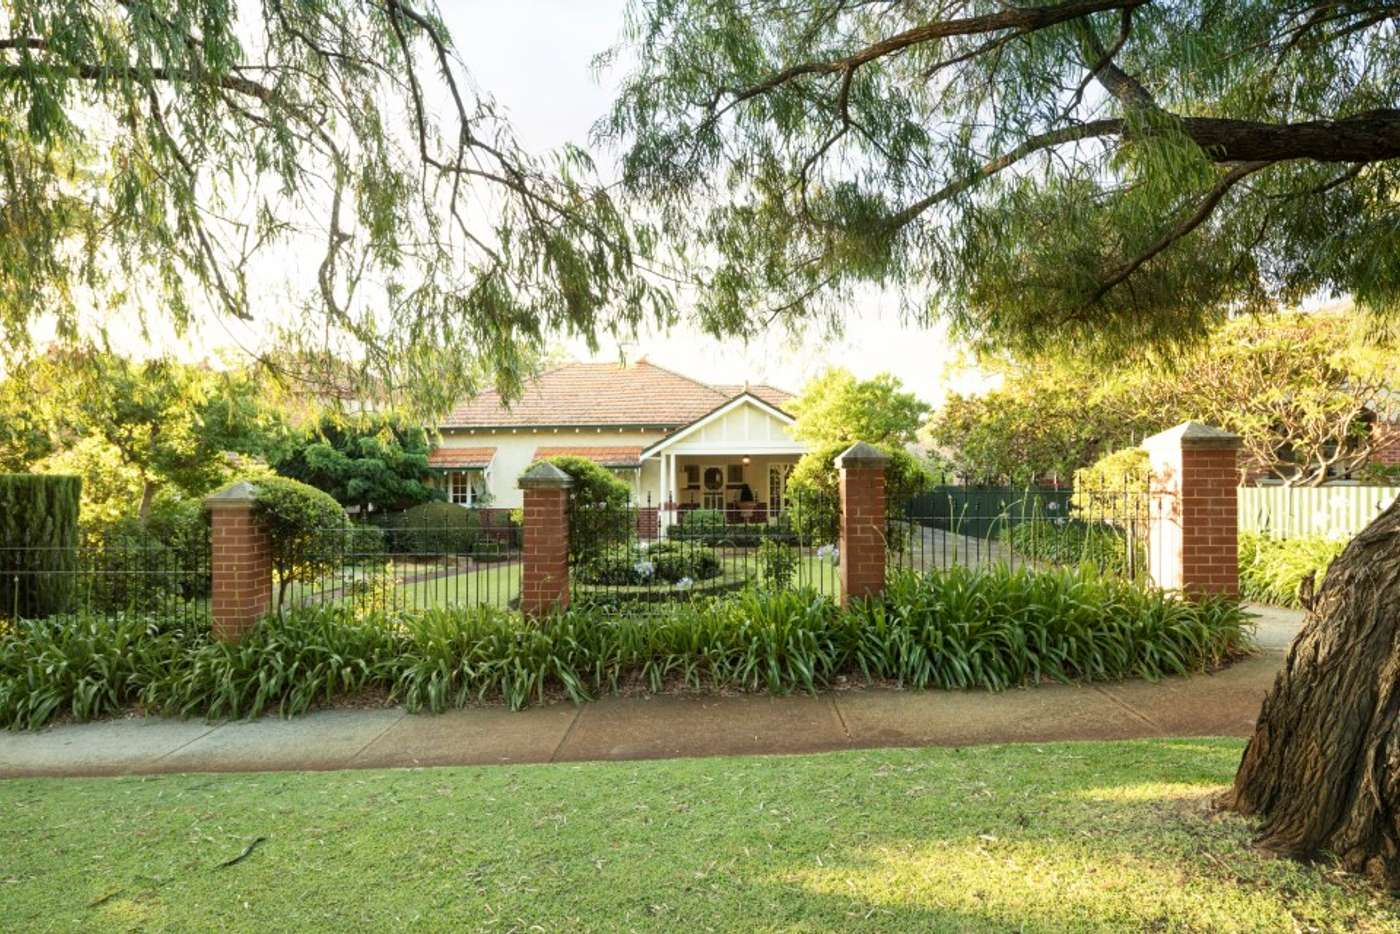 Main view of Homely house listing, 28 Woodroyd Street, Mount Lawley WA 6050